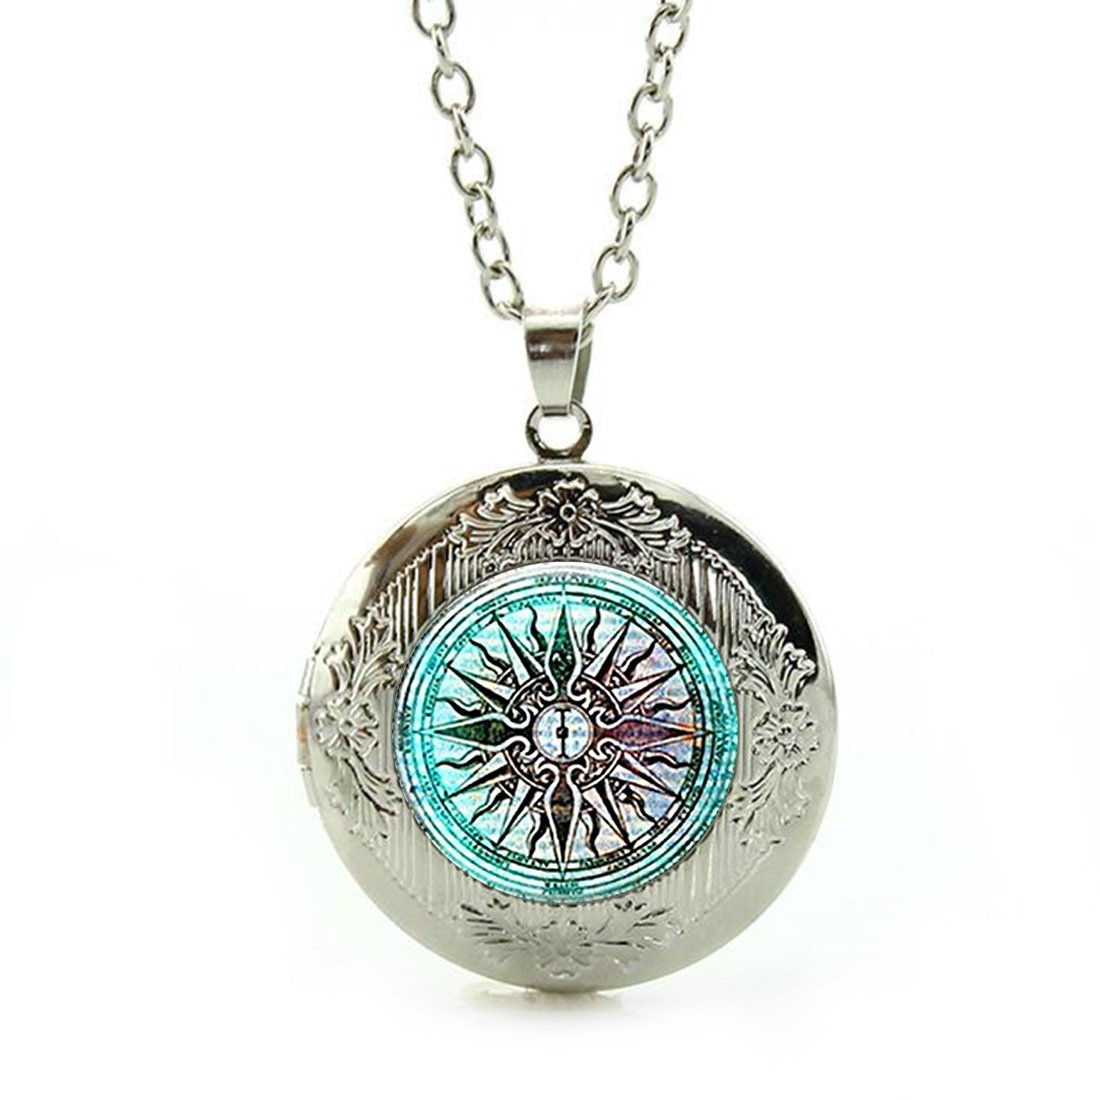 Women's Custom Locket Closure Pendant Necklace Compass Rose Nautical Windrose Rose of The Winds Included Free Silver Chain, Best Gift Set